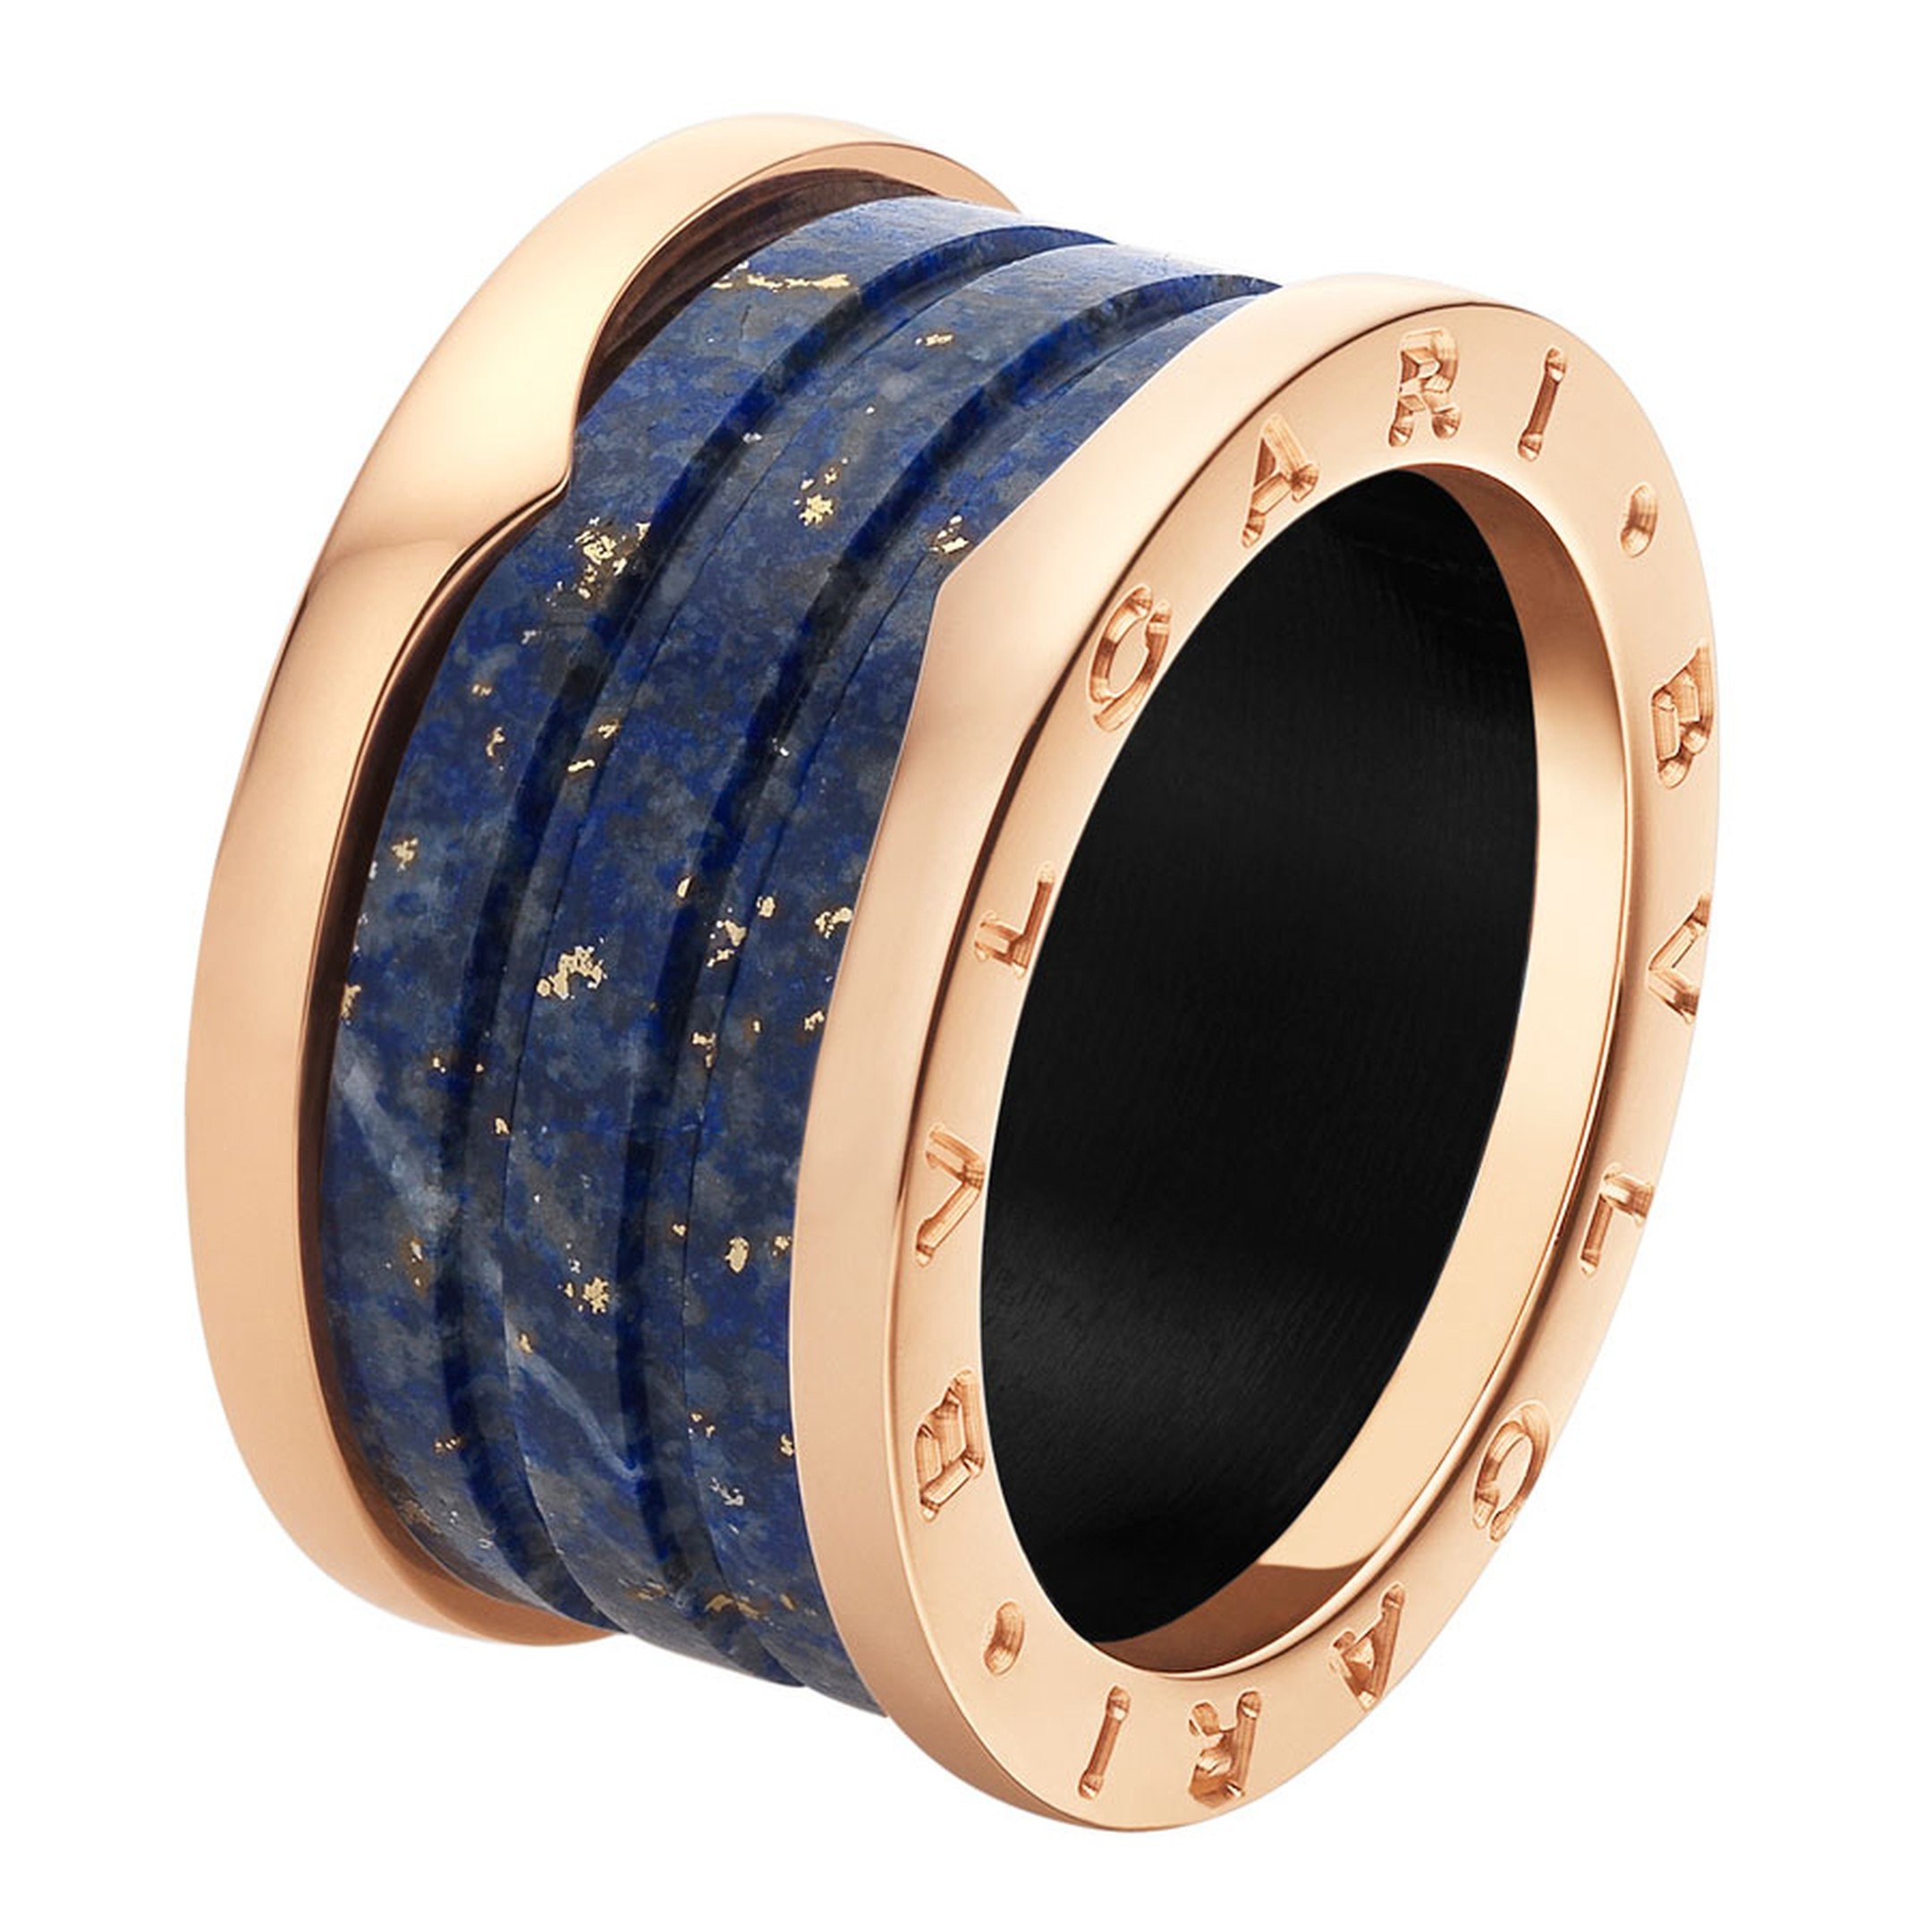 Bulgari Bzero1 pink gold and blue marble 4-band ring _ 790 GBP